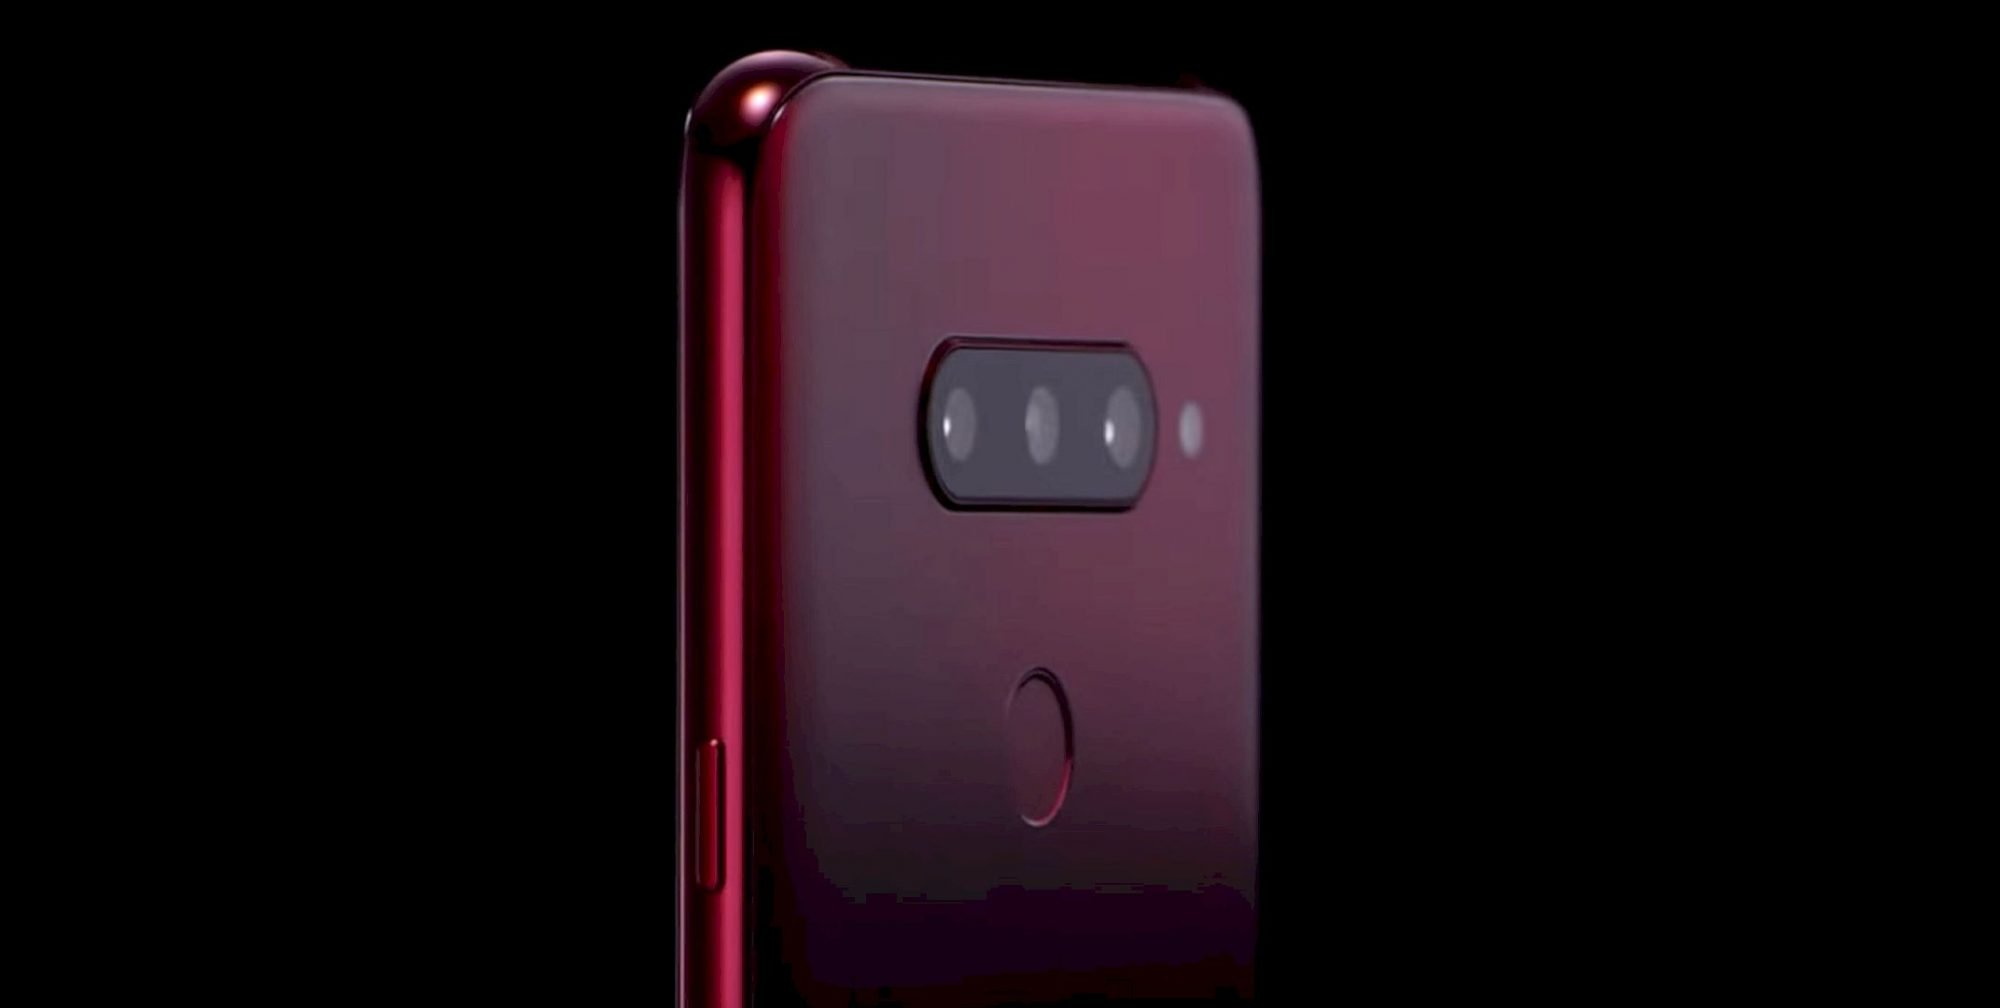 LG V40 ThinQ: the power to capture moments!